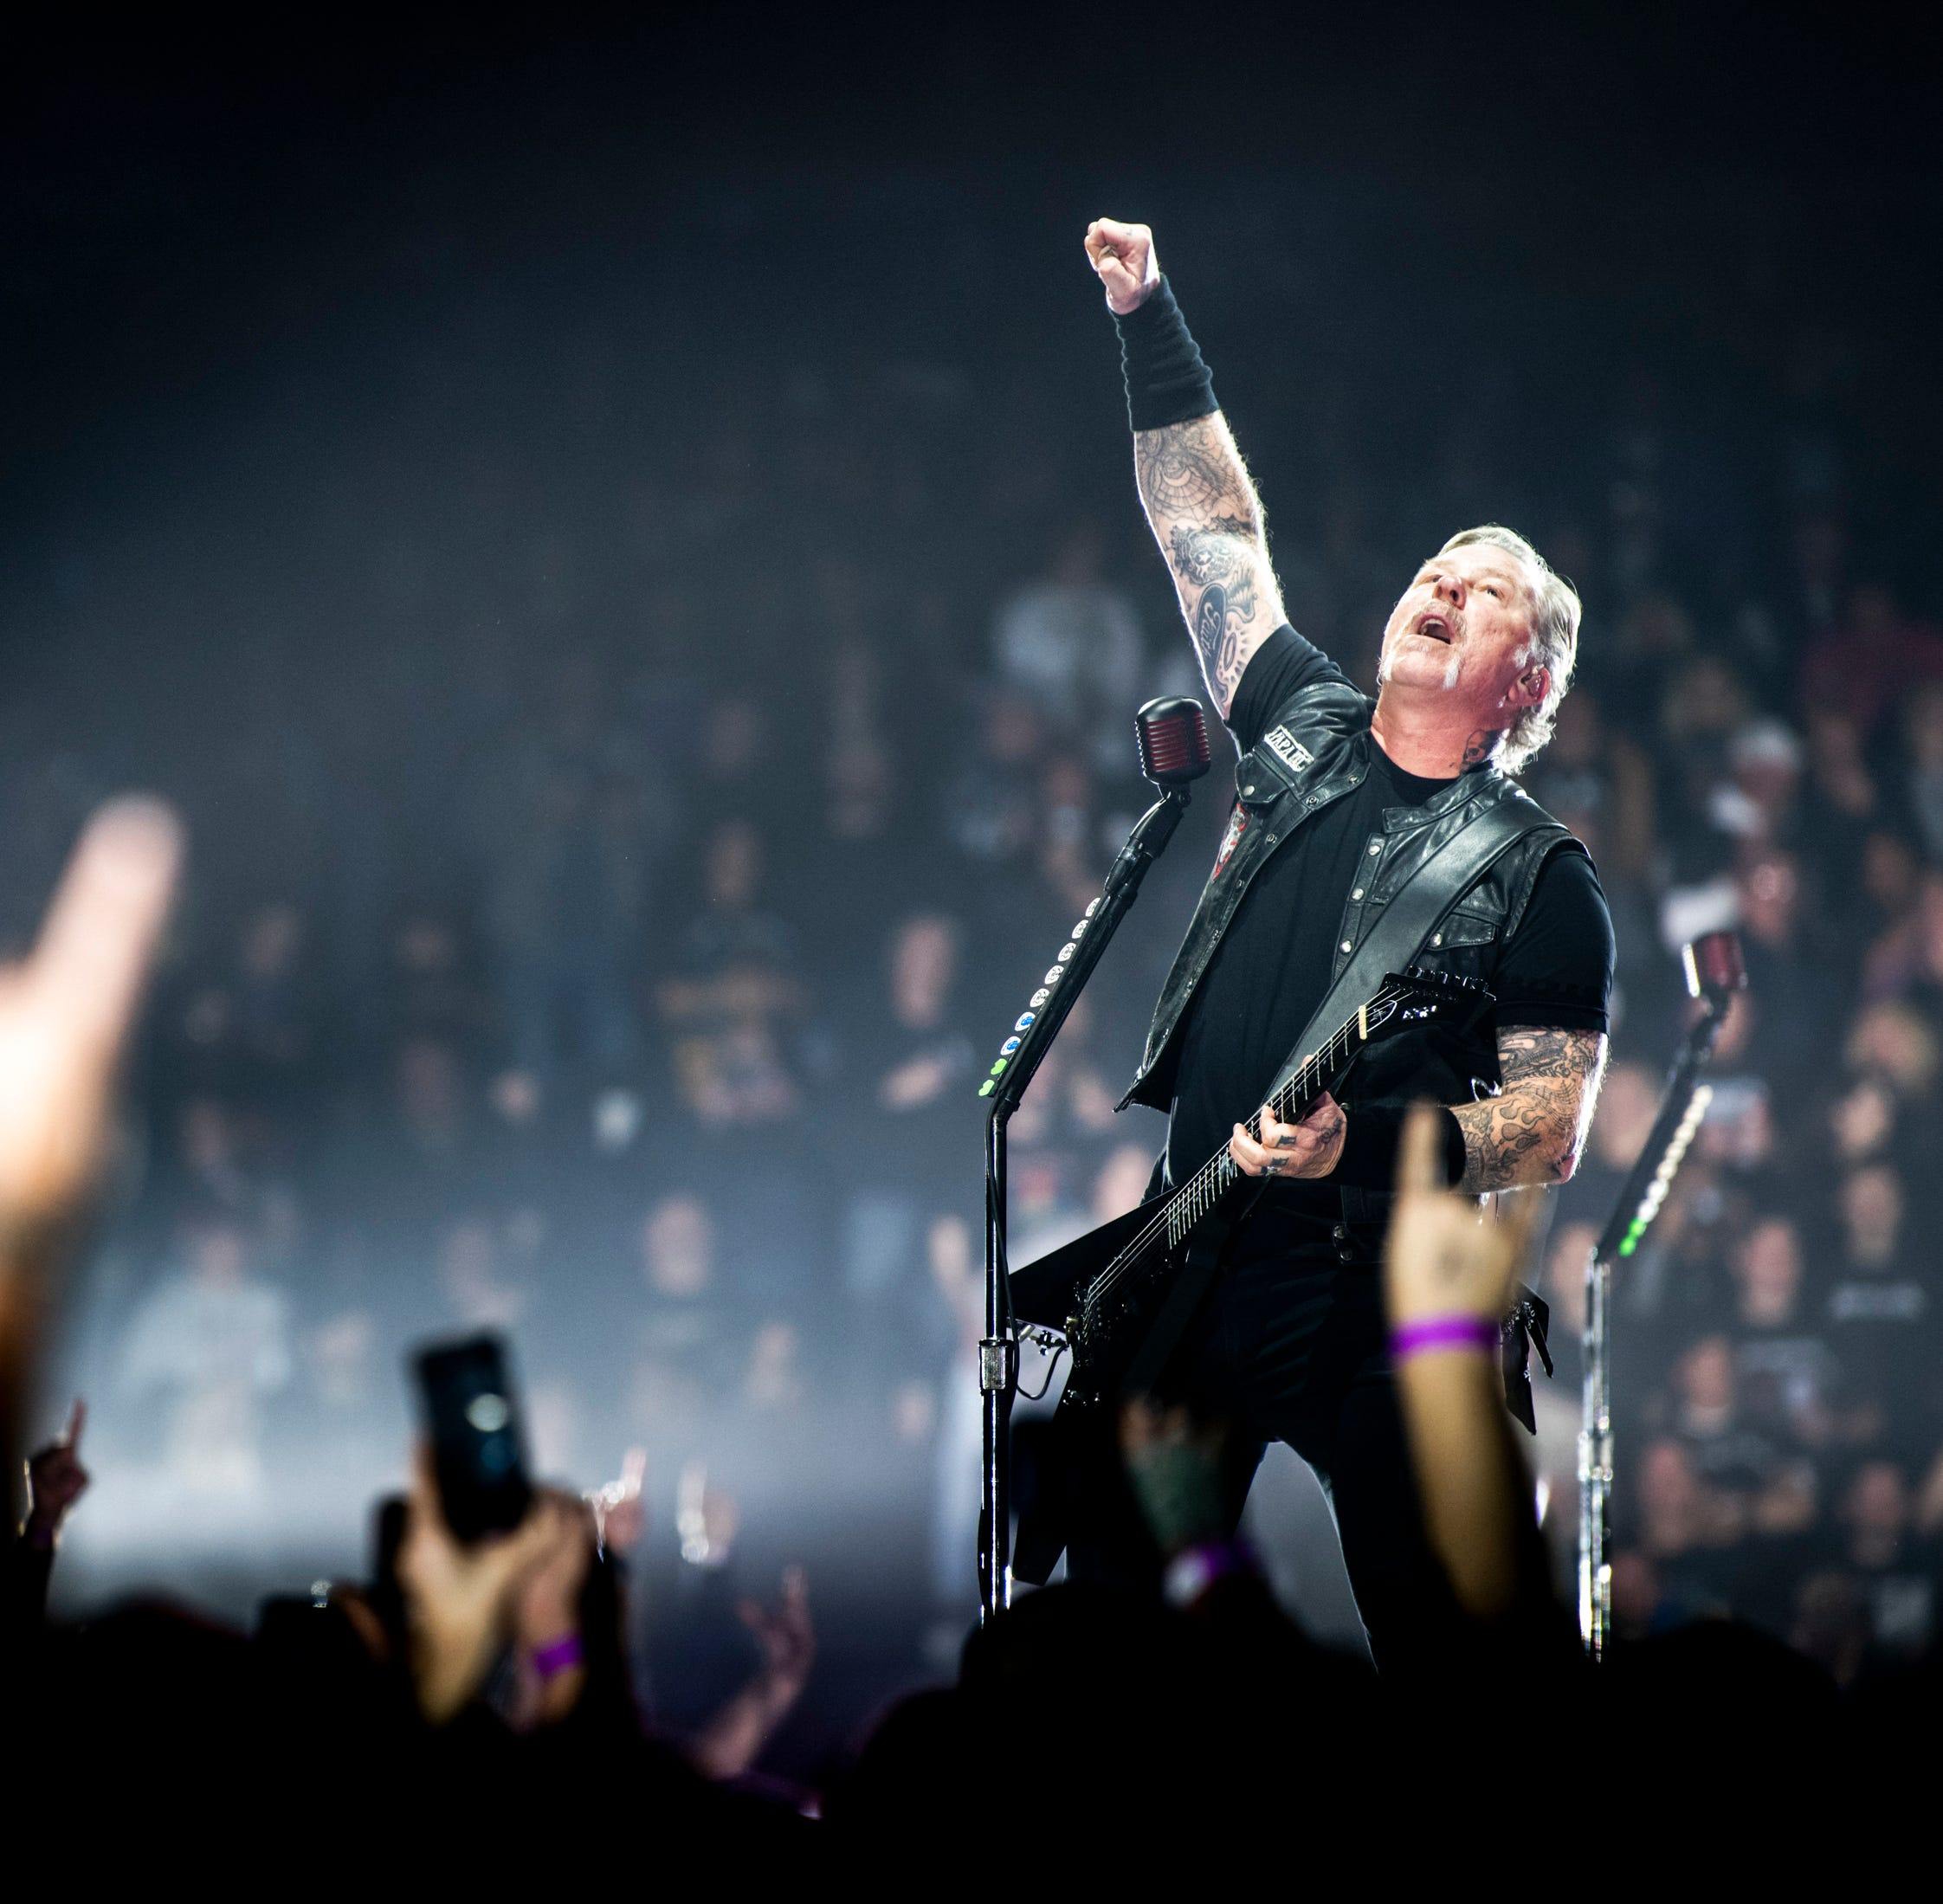 What Metallica's setlist may look like when the 2019 tour hits Louisville